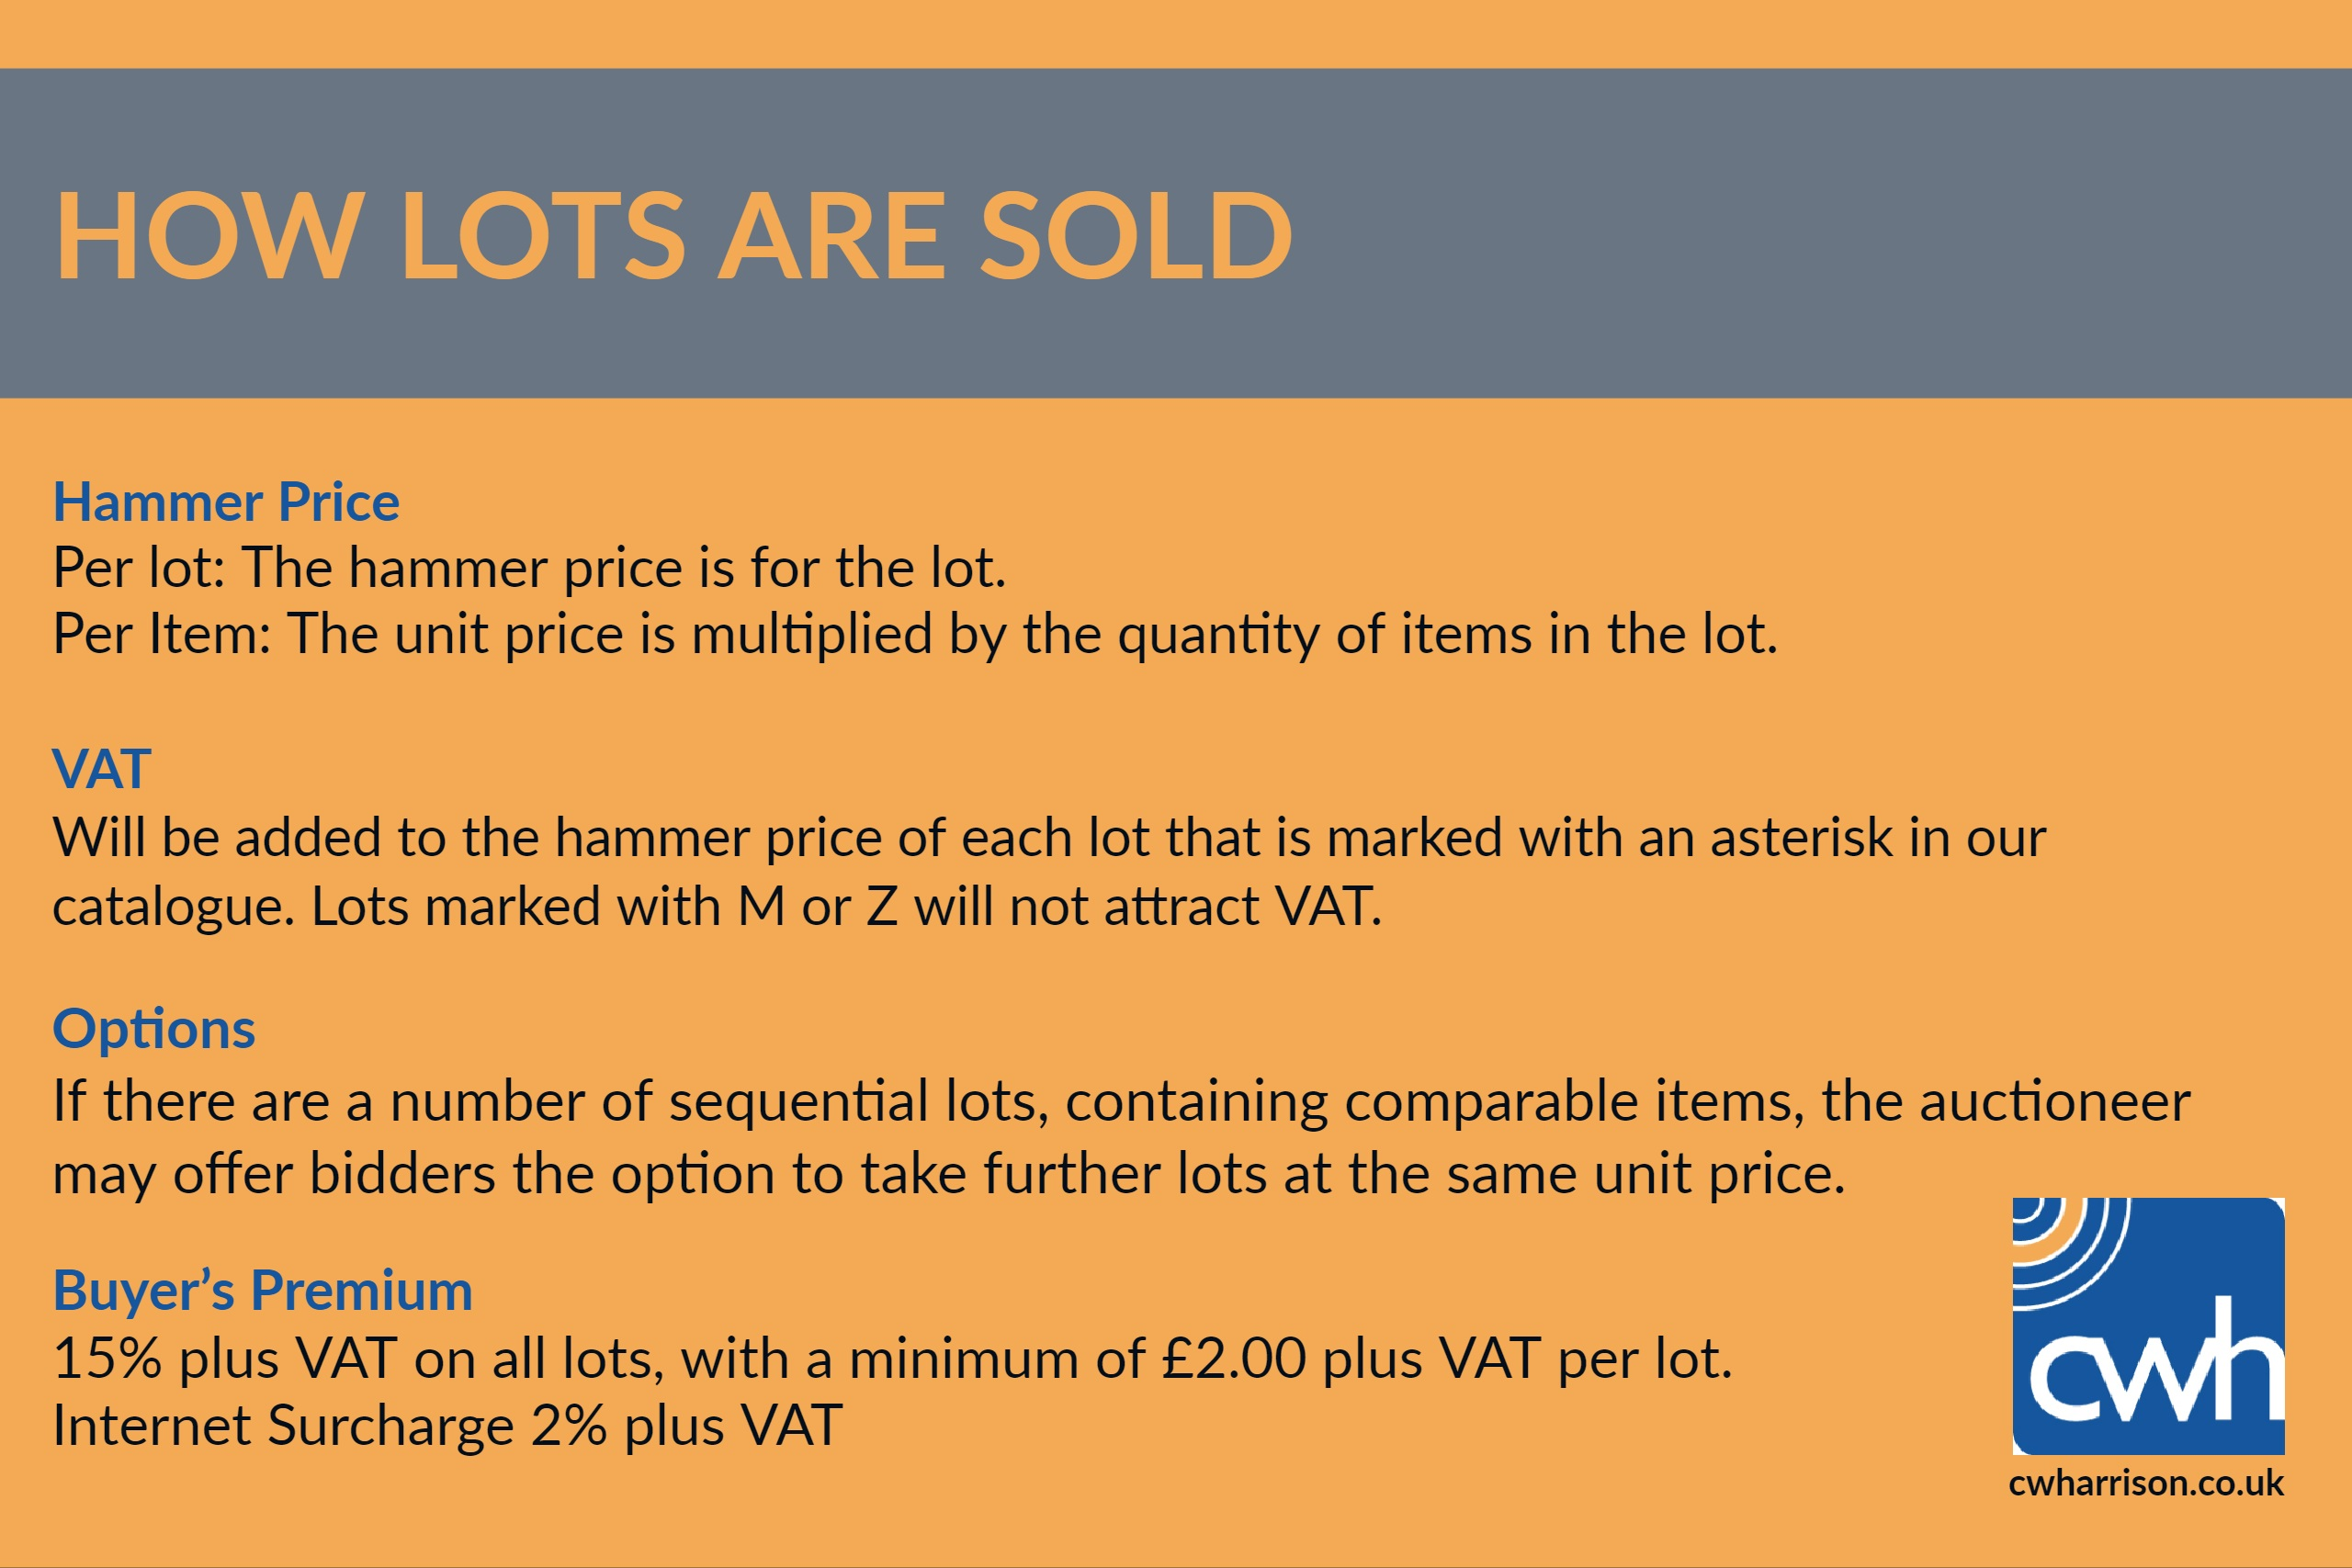 Lot 1D - How Lots Are Sold